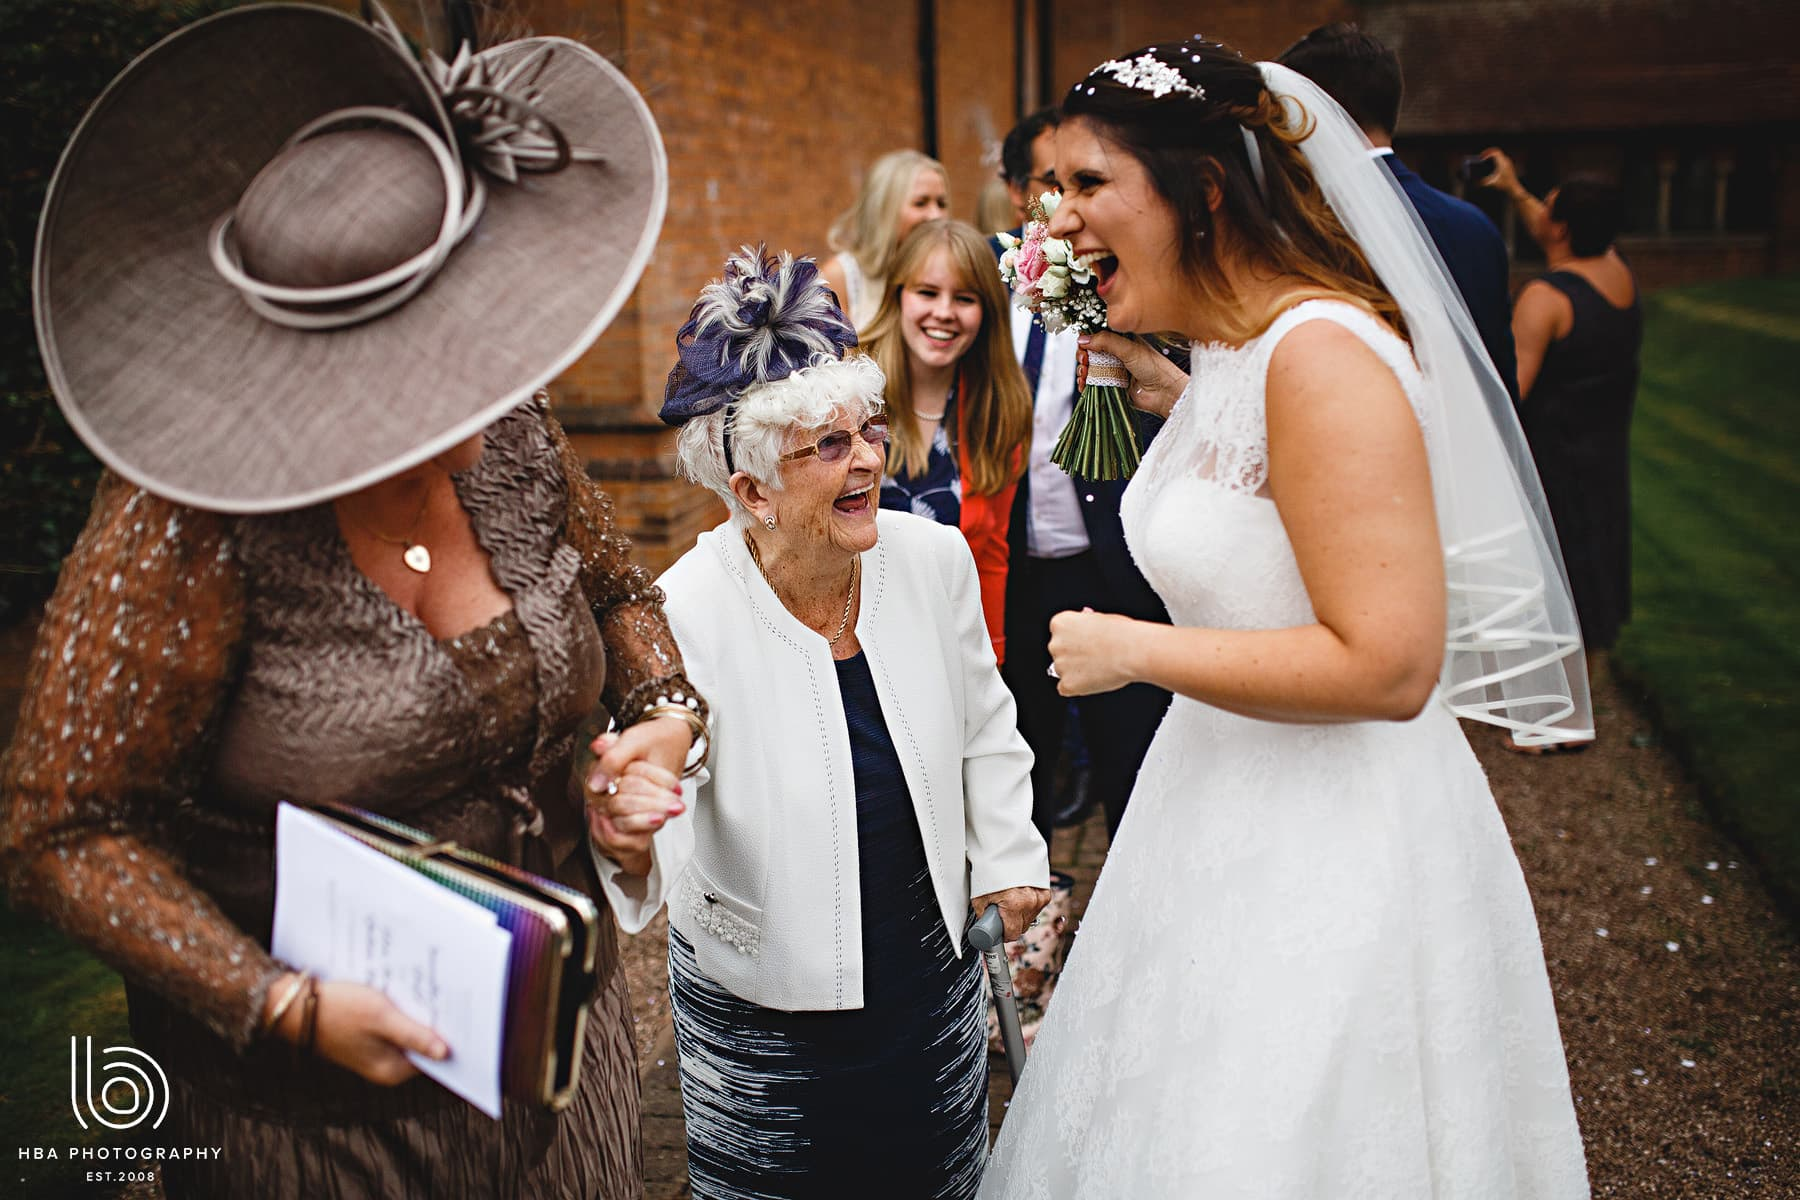 the bride laughing with her grandma